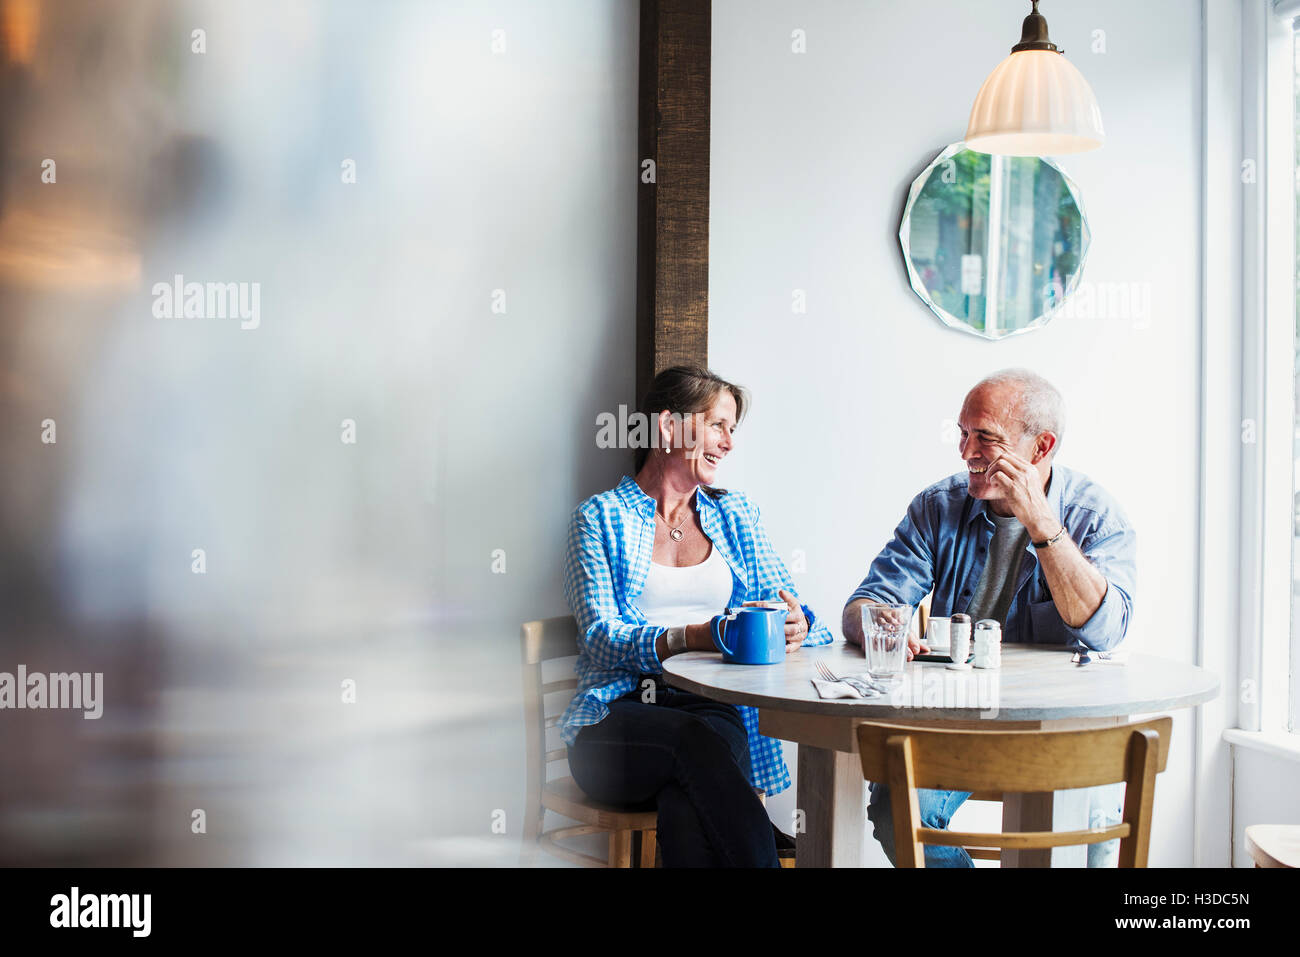 Two people seated at a coffee shop table.  Blurred foreground. - Stock Image